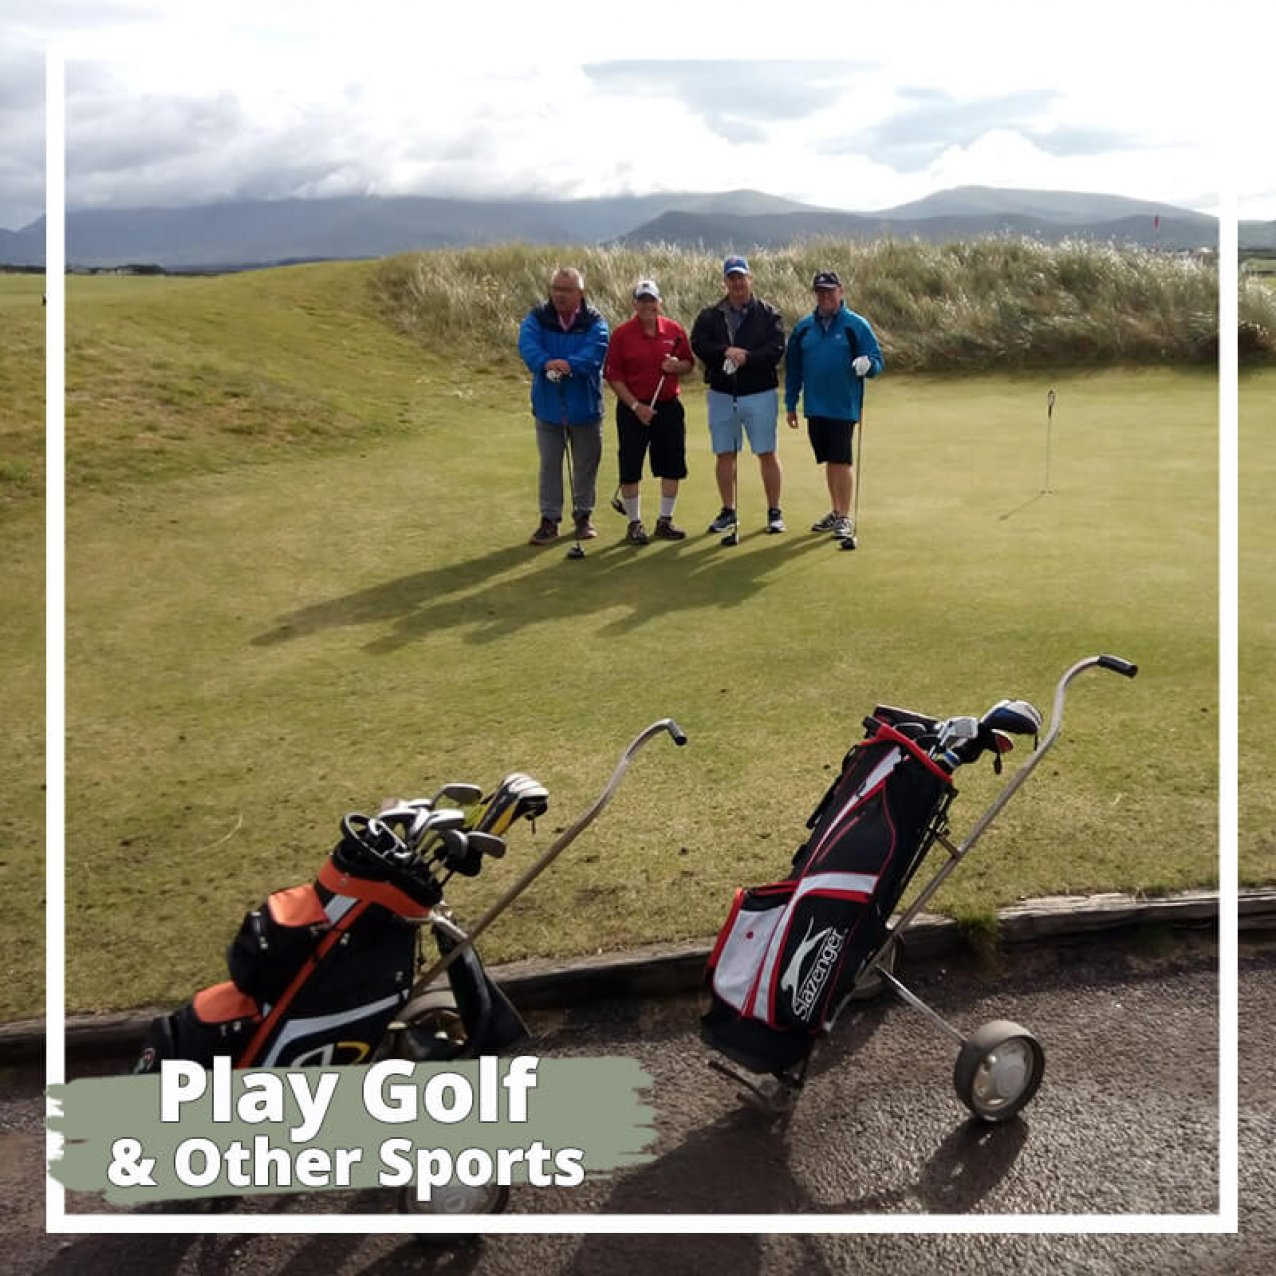 Play golf on a private tour of Ireland